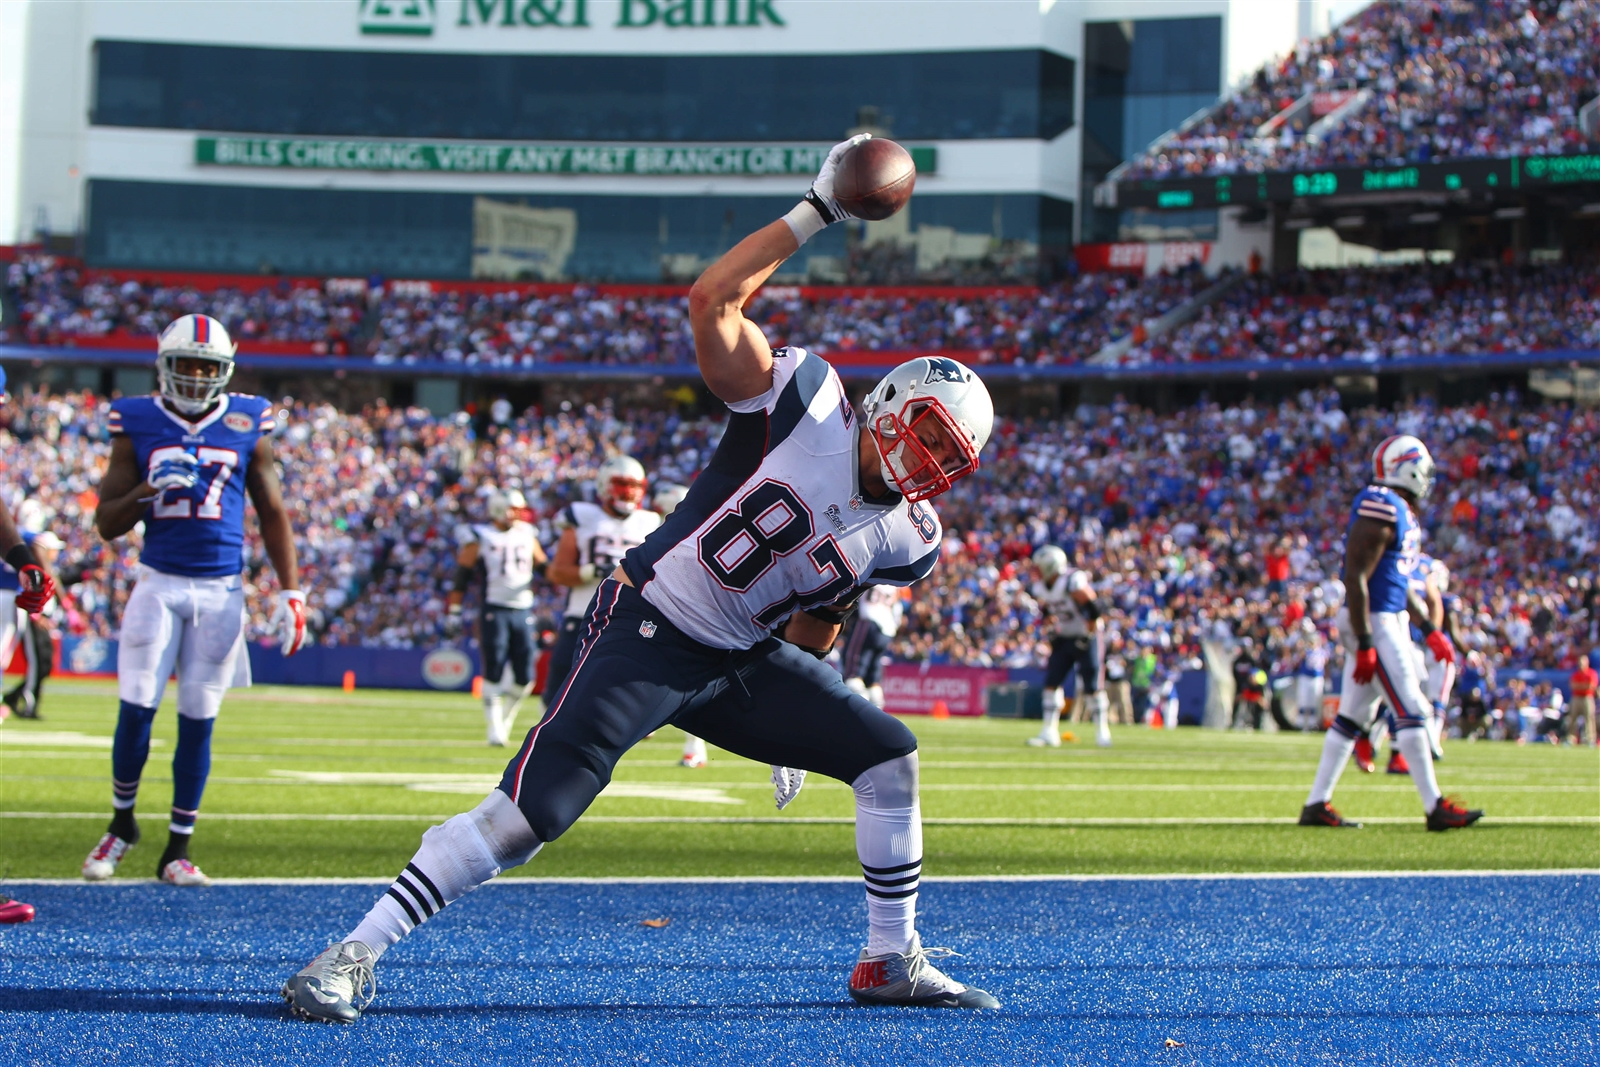 Amherst native Rob Gronkowski is building a resume that will put him in discussion as the greatest tight end of all-time. (Mark Mulville/Buffalo News)